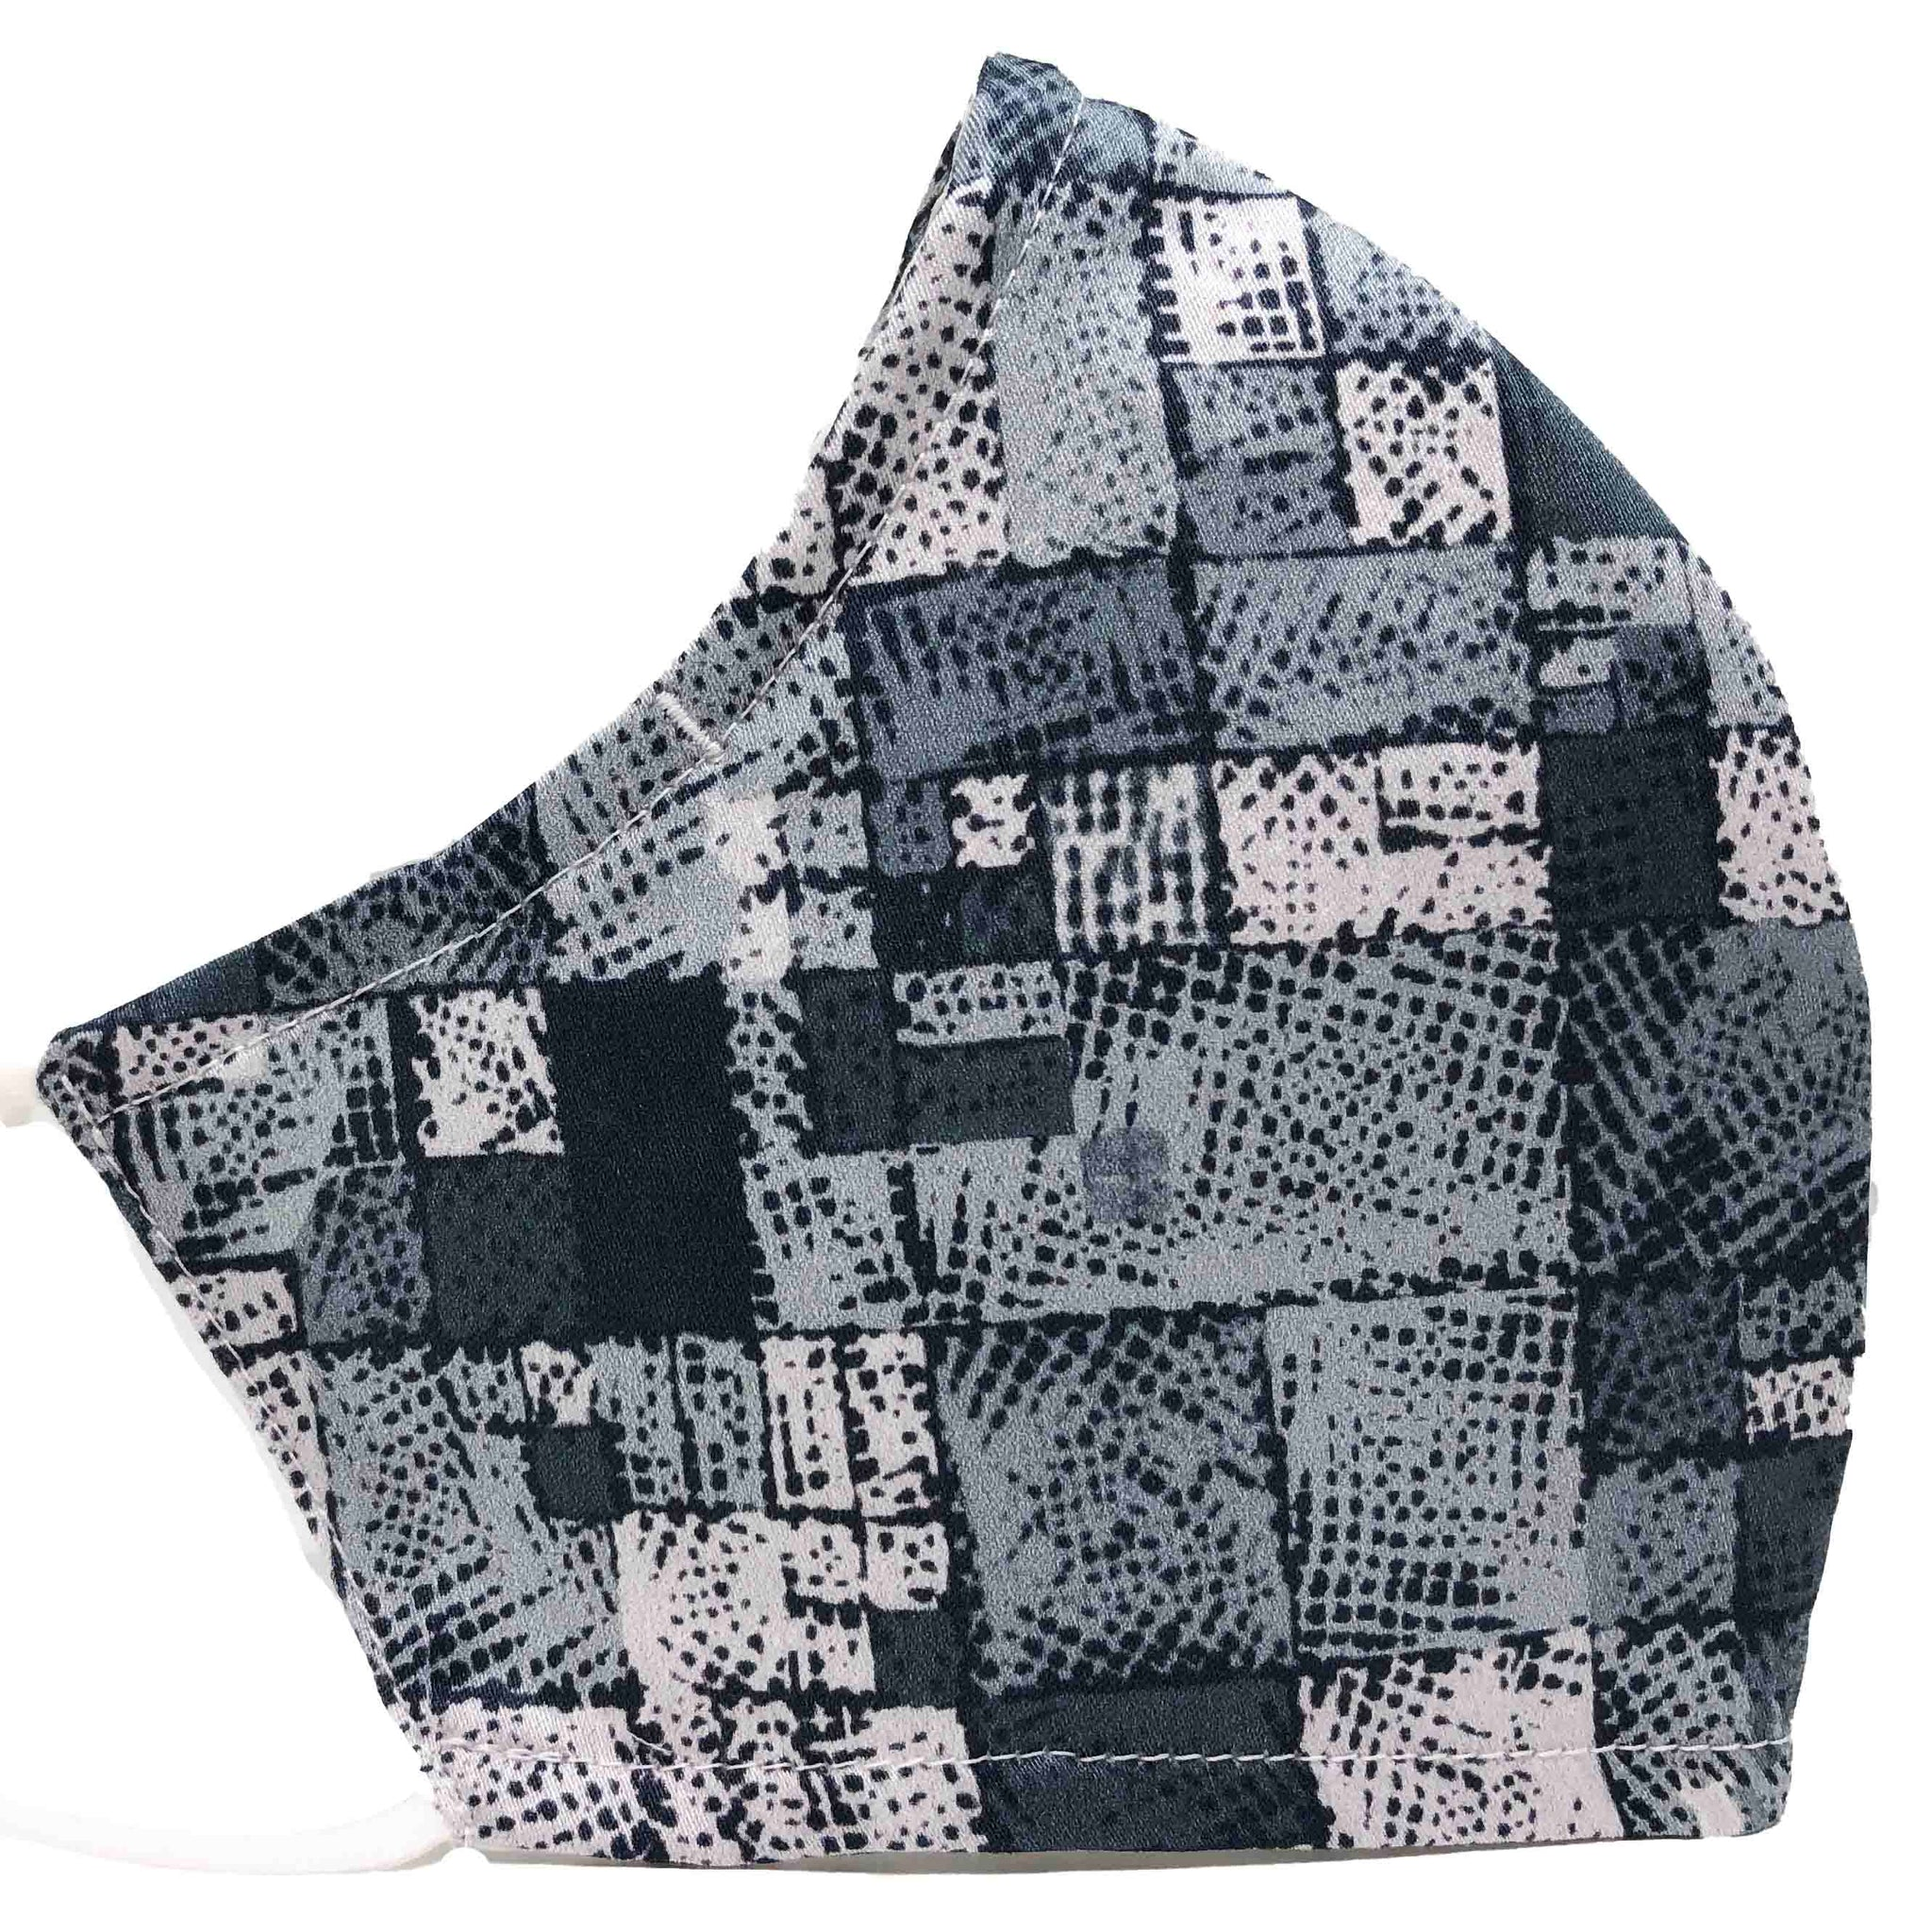 100% Cotton Triple Layer Adjustable Mask with Built-In Nose Wire & Filter Pocket - Cityscape